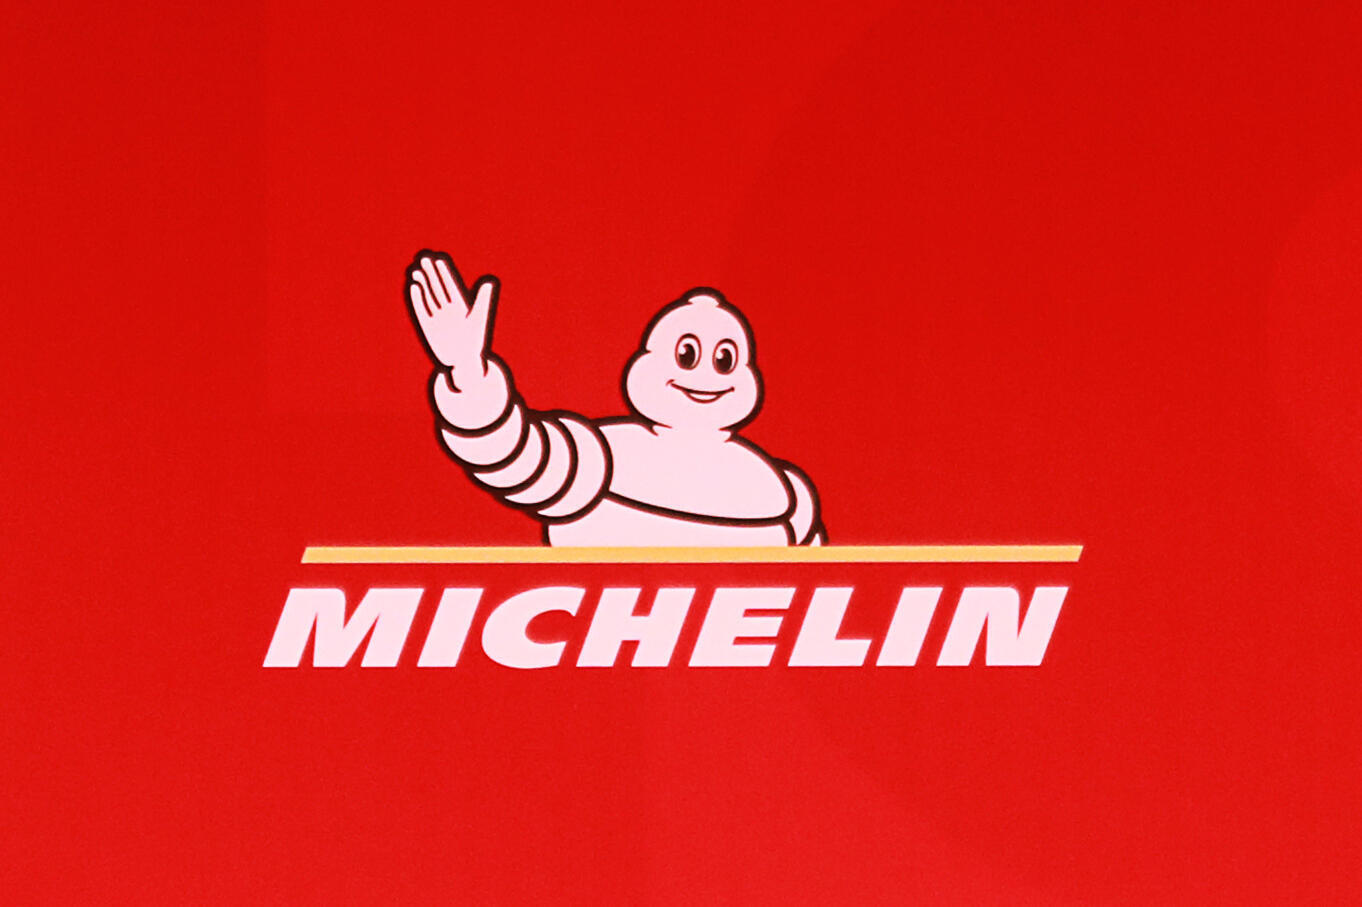 Michelin gave a vegan restaurant in France a thumbs-up